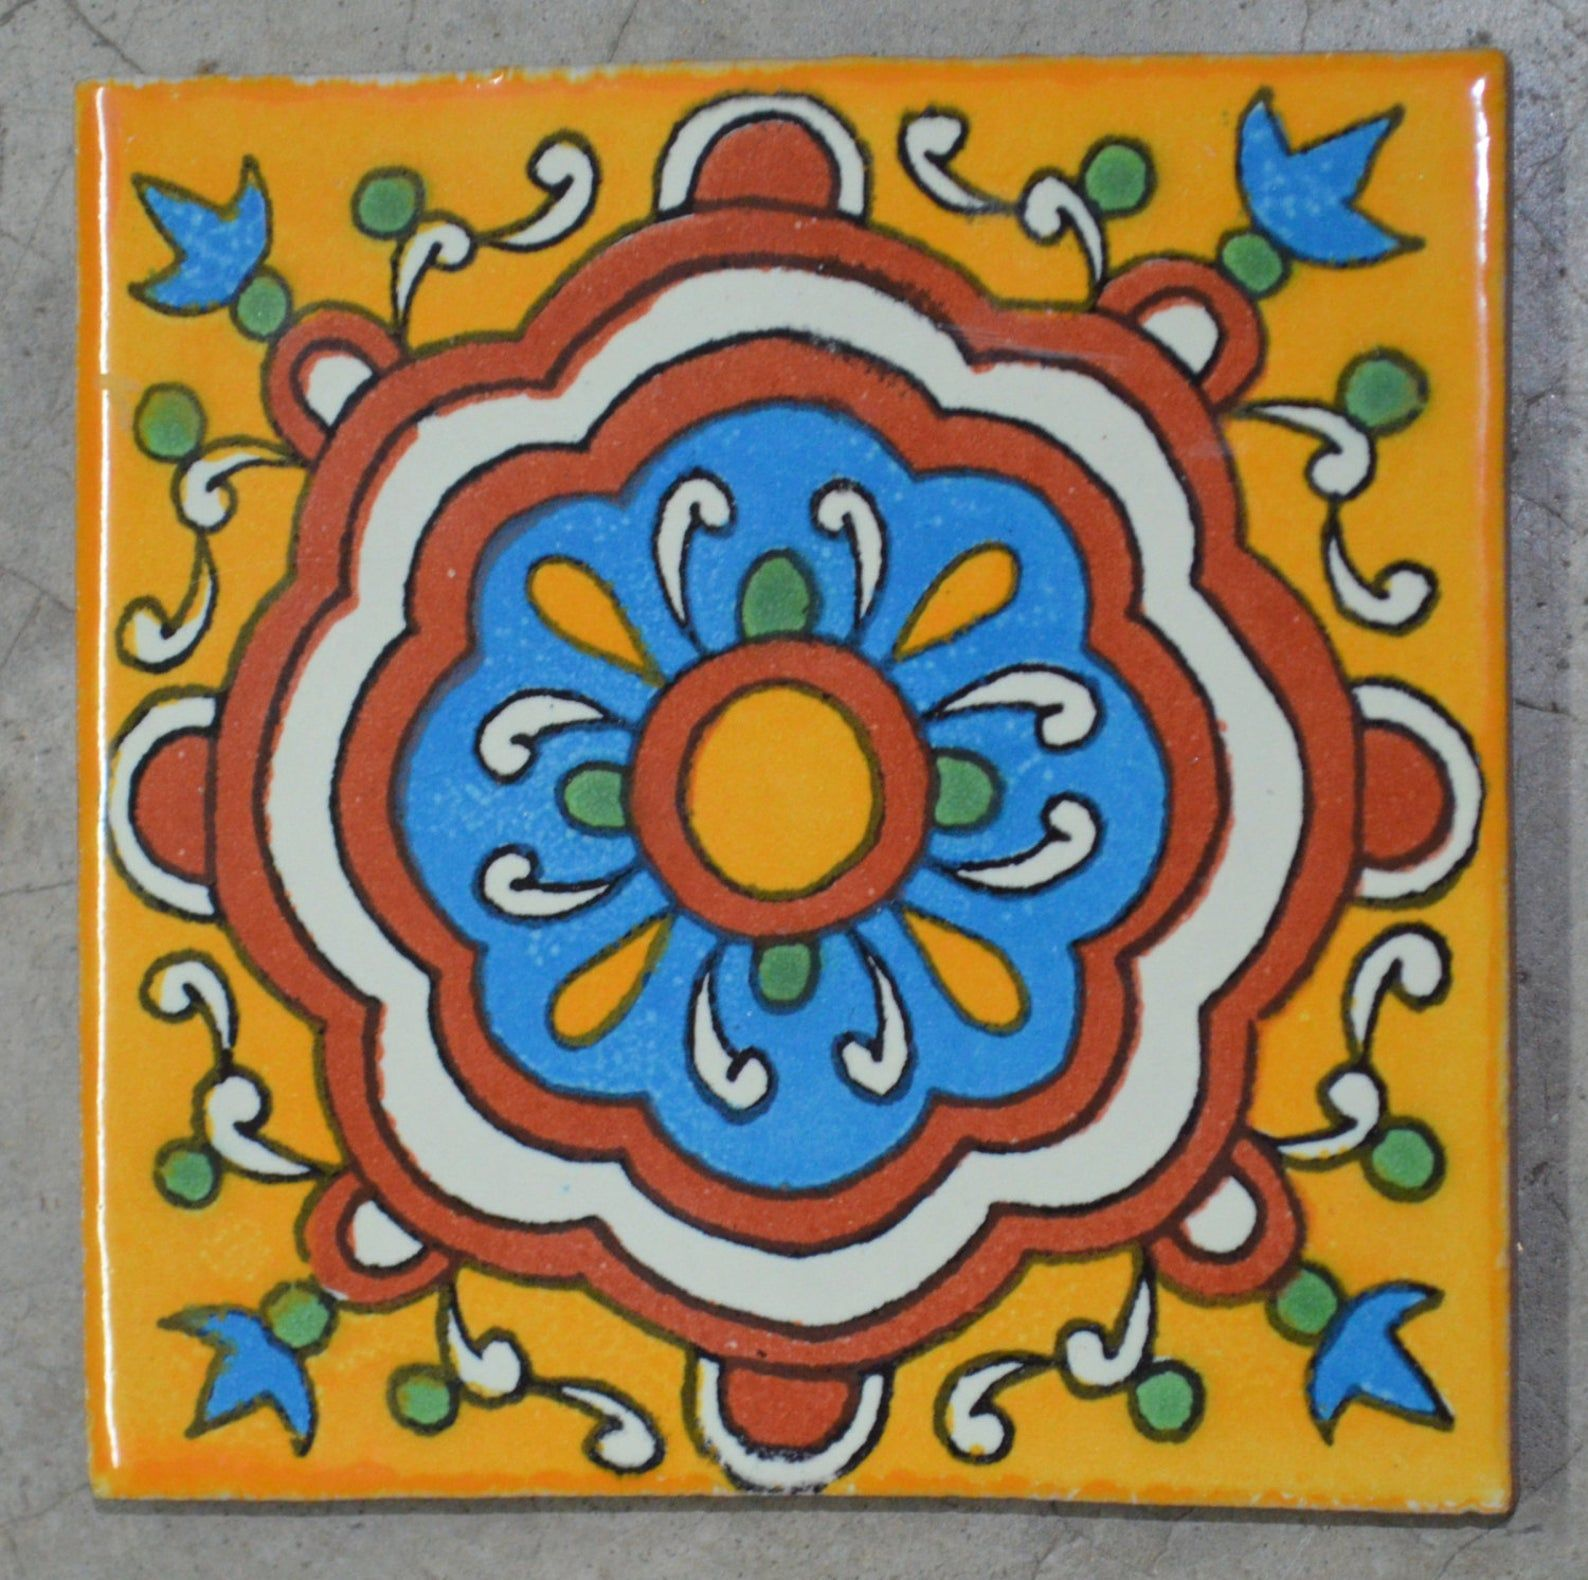 12 Mexican Talavera Tiles Handmade Hand Painted 4 X Etsy In 2020 Talavera Tiles Mexican Talavera Talavera